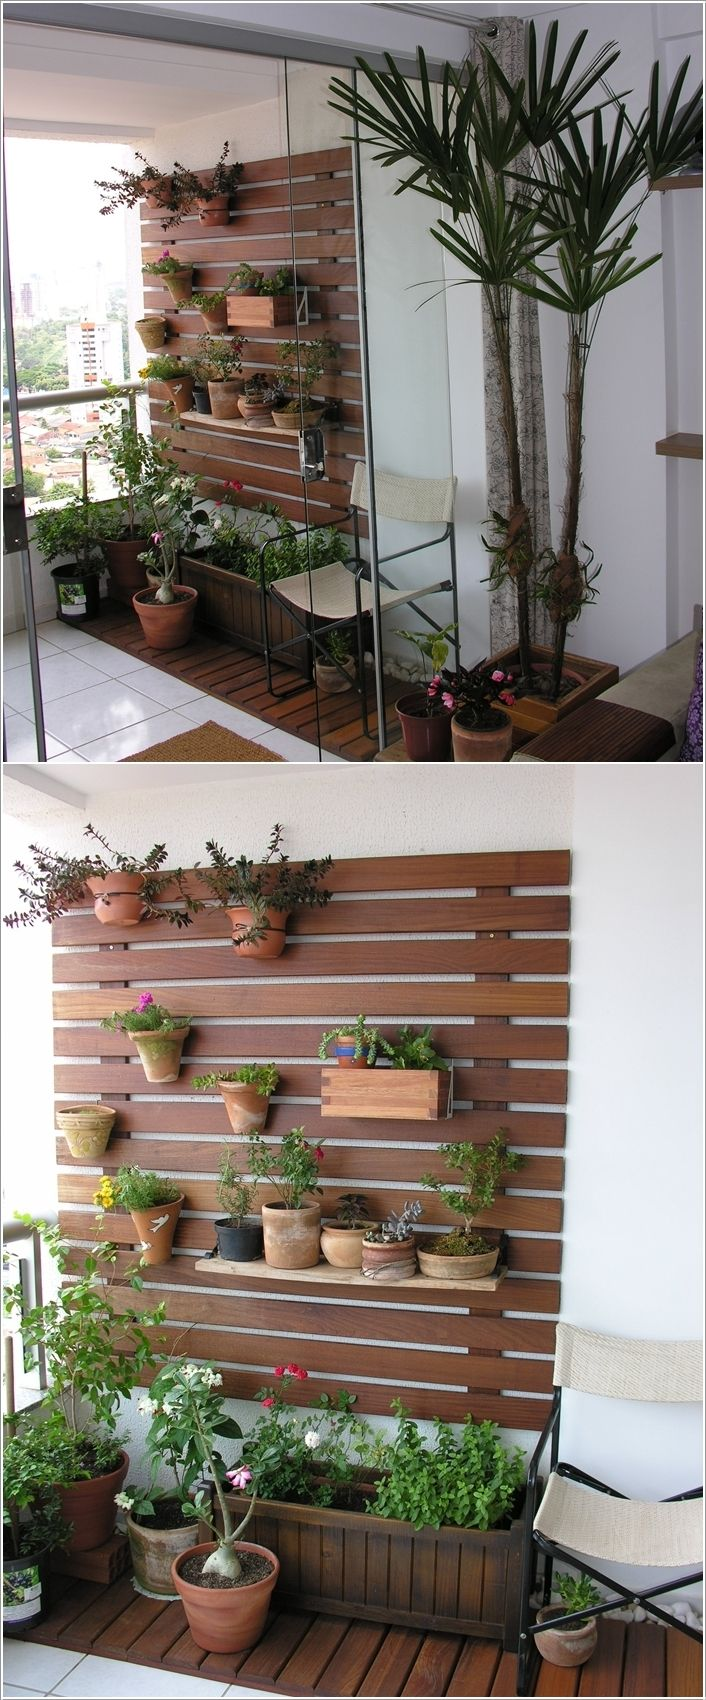 25 best wall separator ideas on pinterest room dividers birch tree decor and tree id - Log decor ideas let the nature in ...